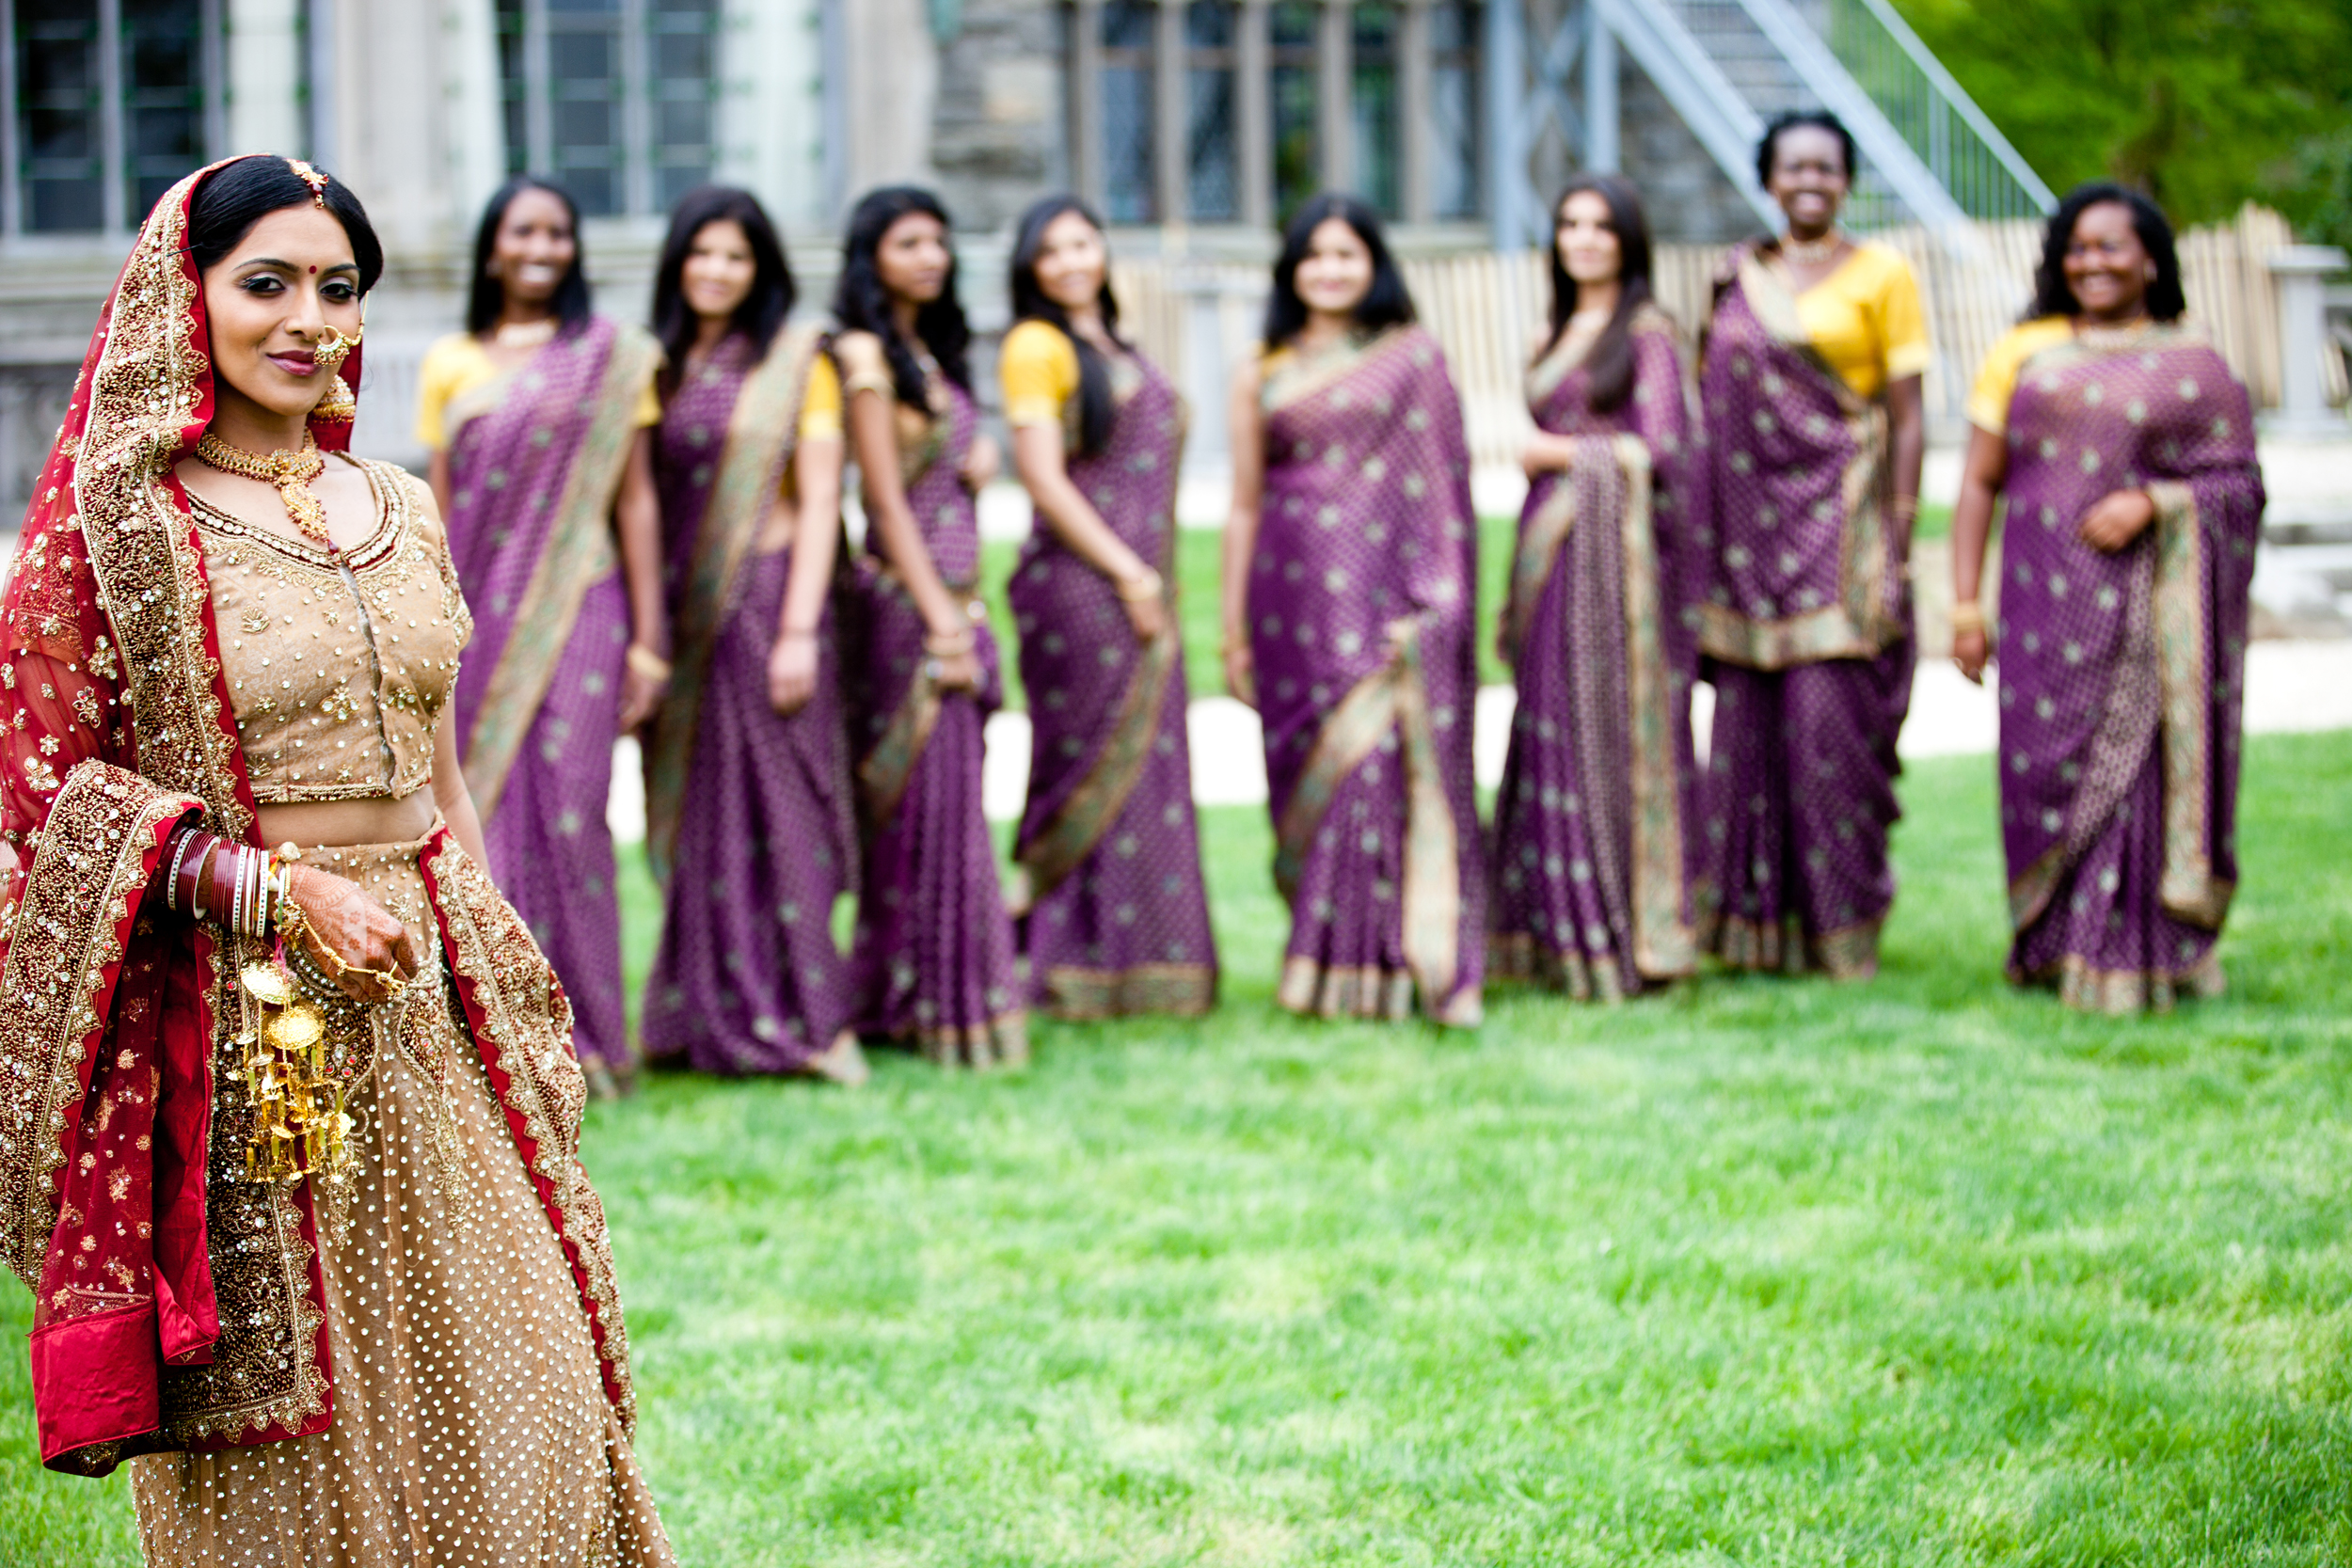 Brilliant Outdoor South Asian Wedding - Lifetime Events By Jacqueline